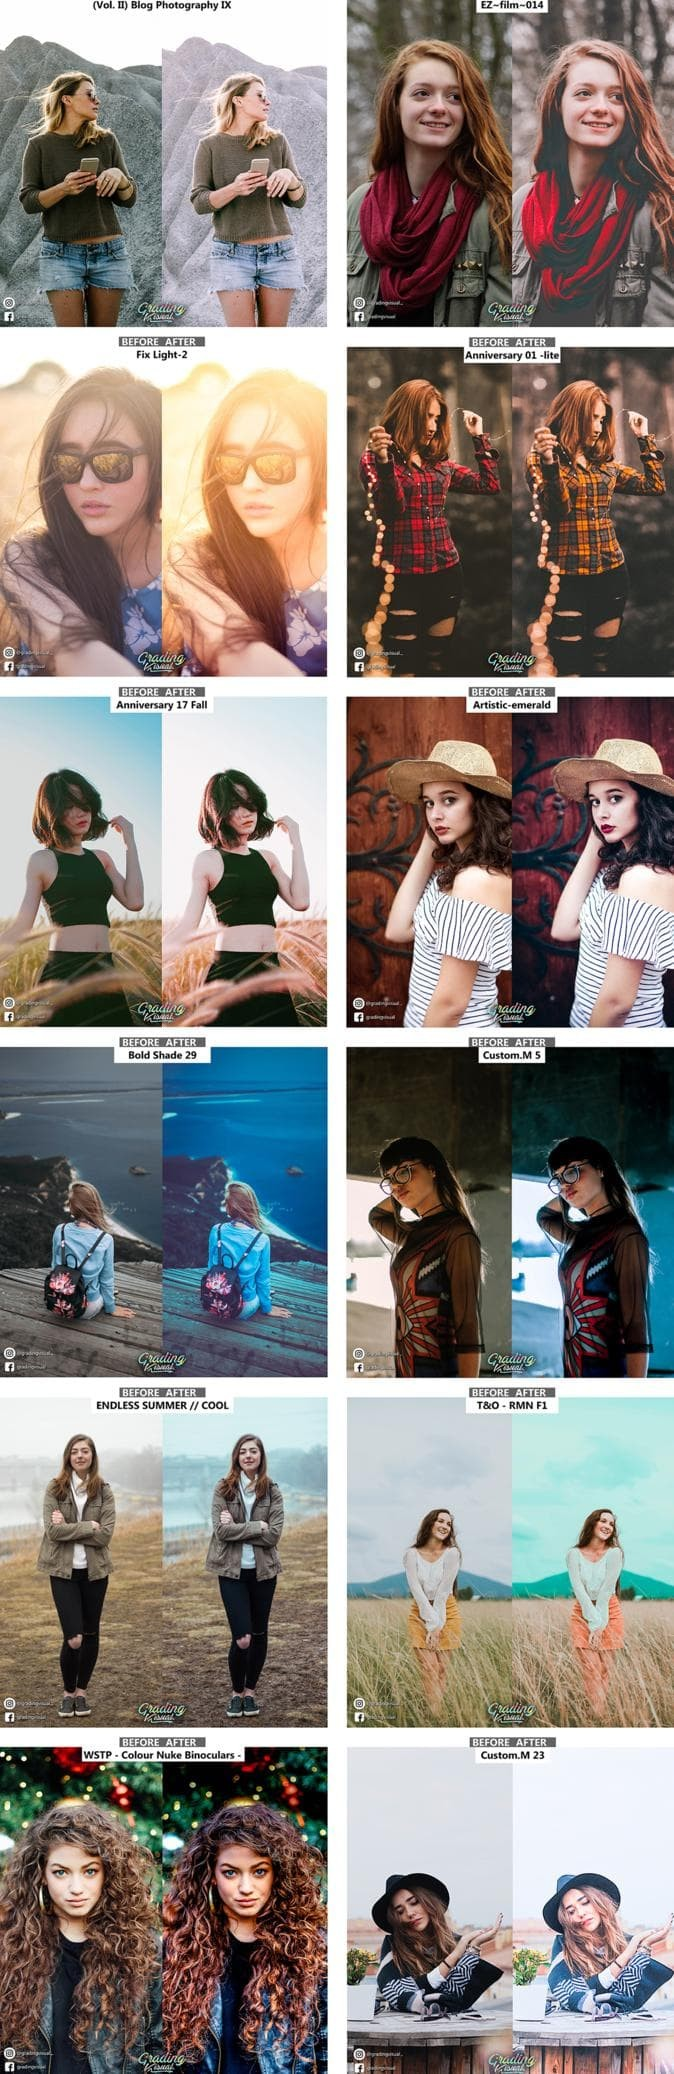 Jual Software Preset Lightroom Premiere Pro Photoshop Pamela